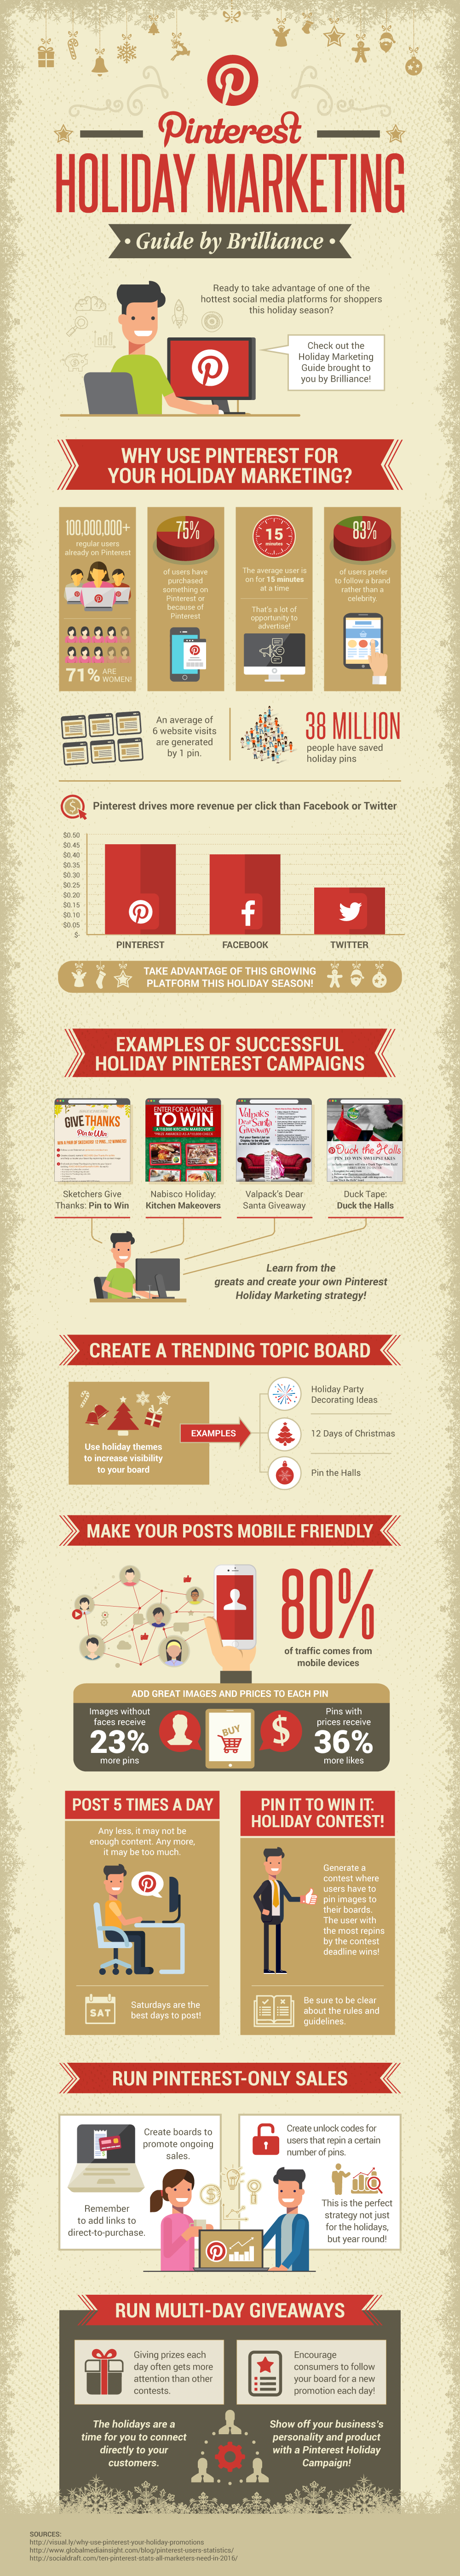 Pinterest Holiday Marketing Infographic